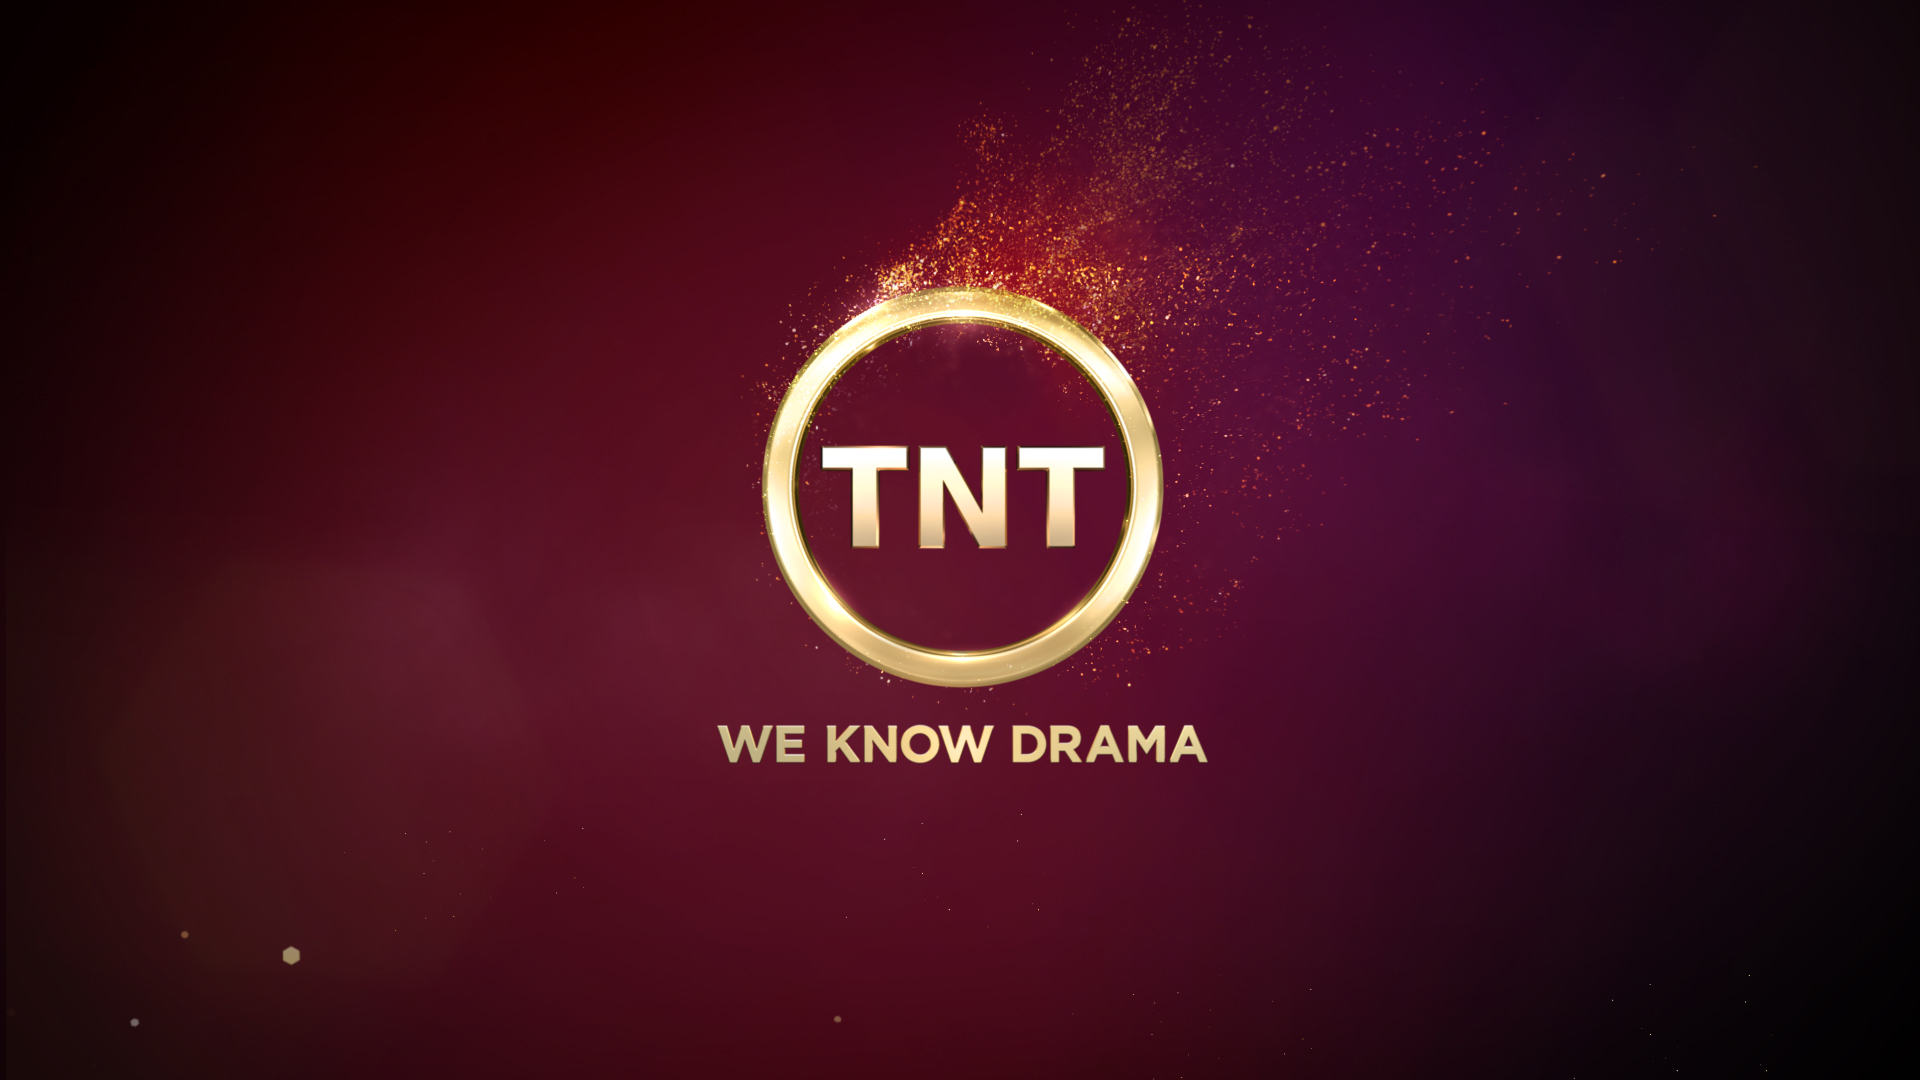 Wallpaper Falling Skies Tnt Tv Show Ratings Updated 8 21 19 Canceled Renewed